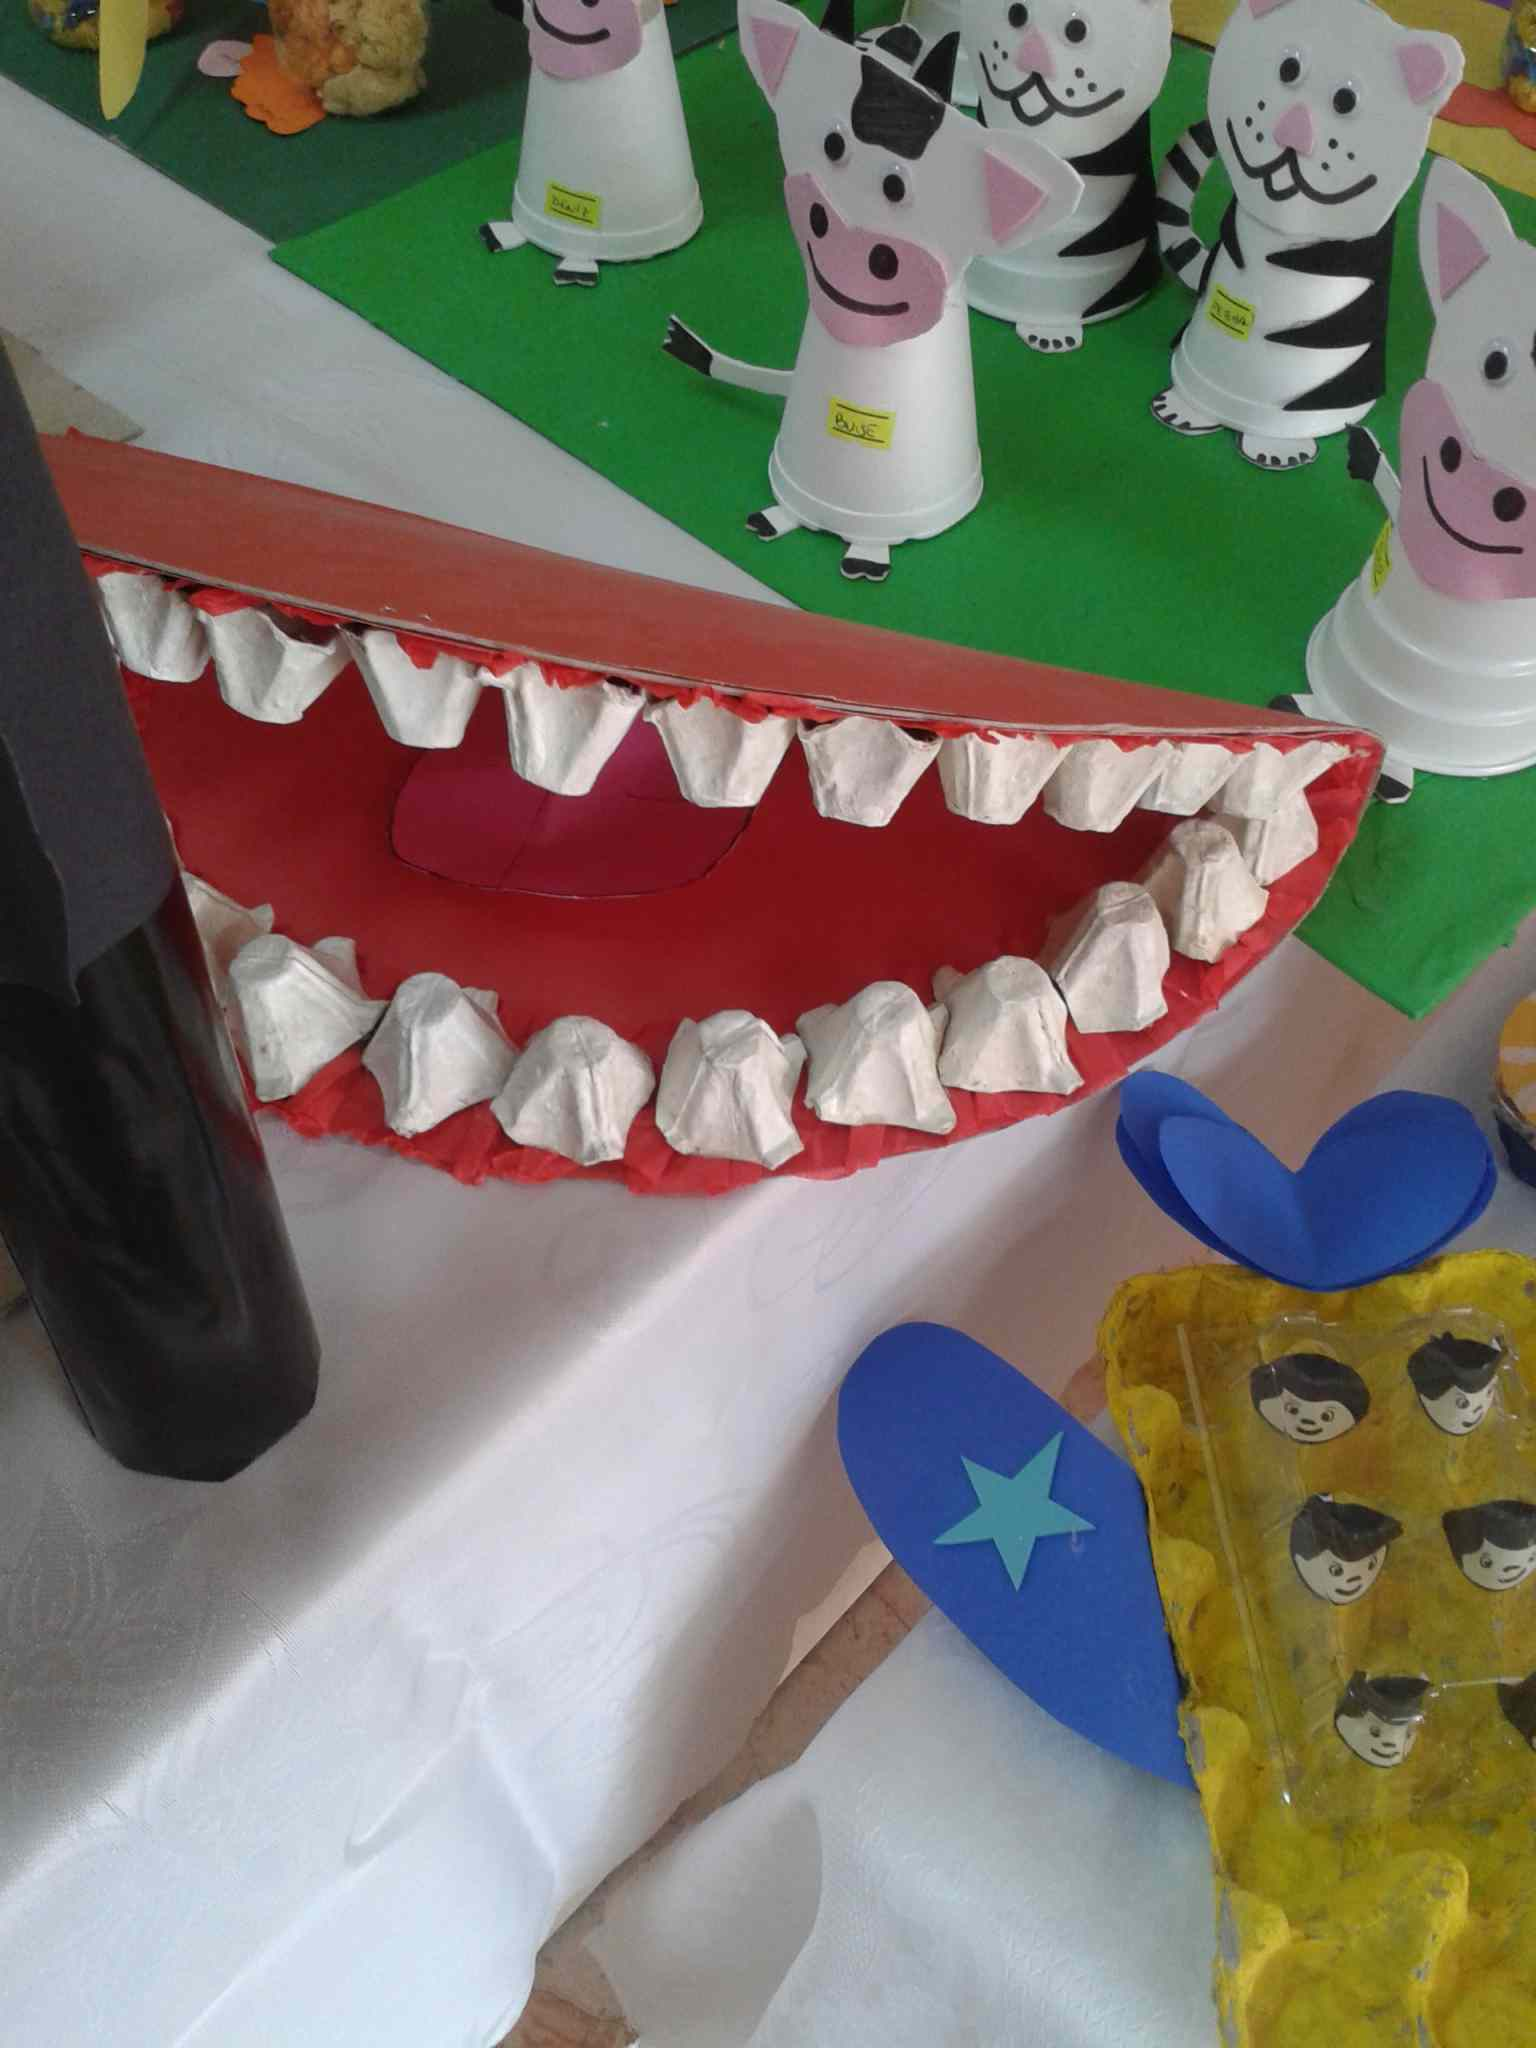 Egg Carton Tooth Craft Idea Preschoolplanet